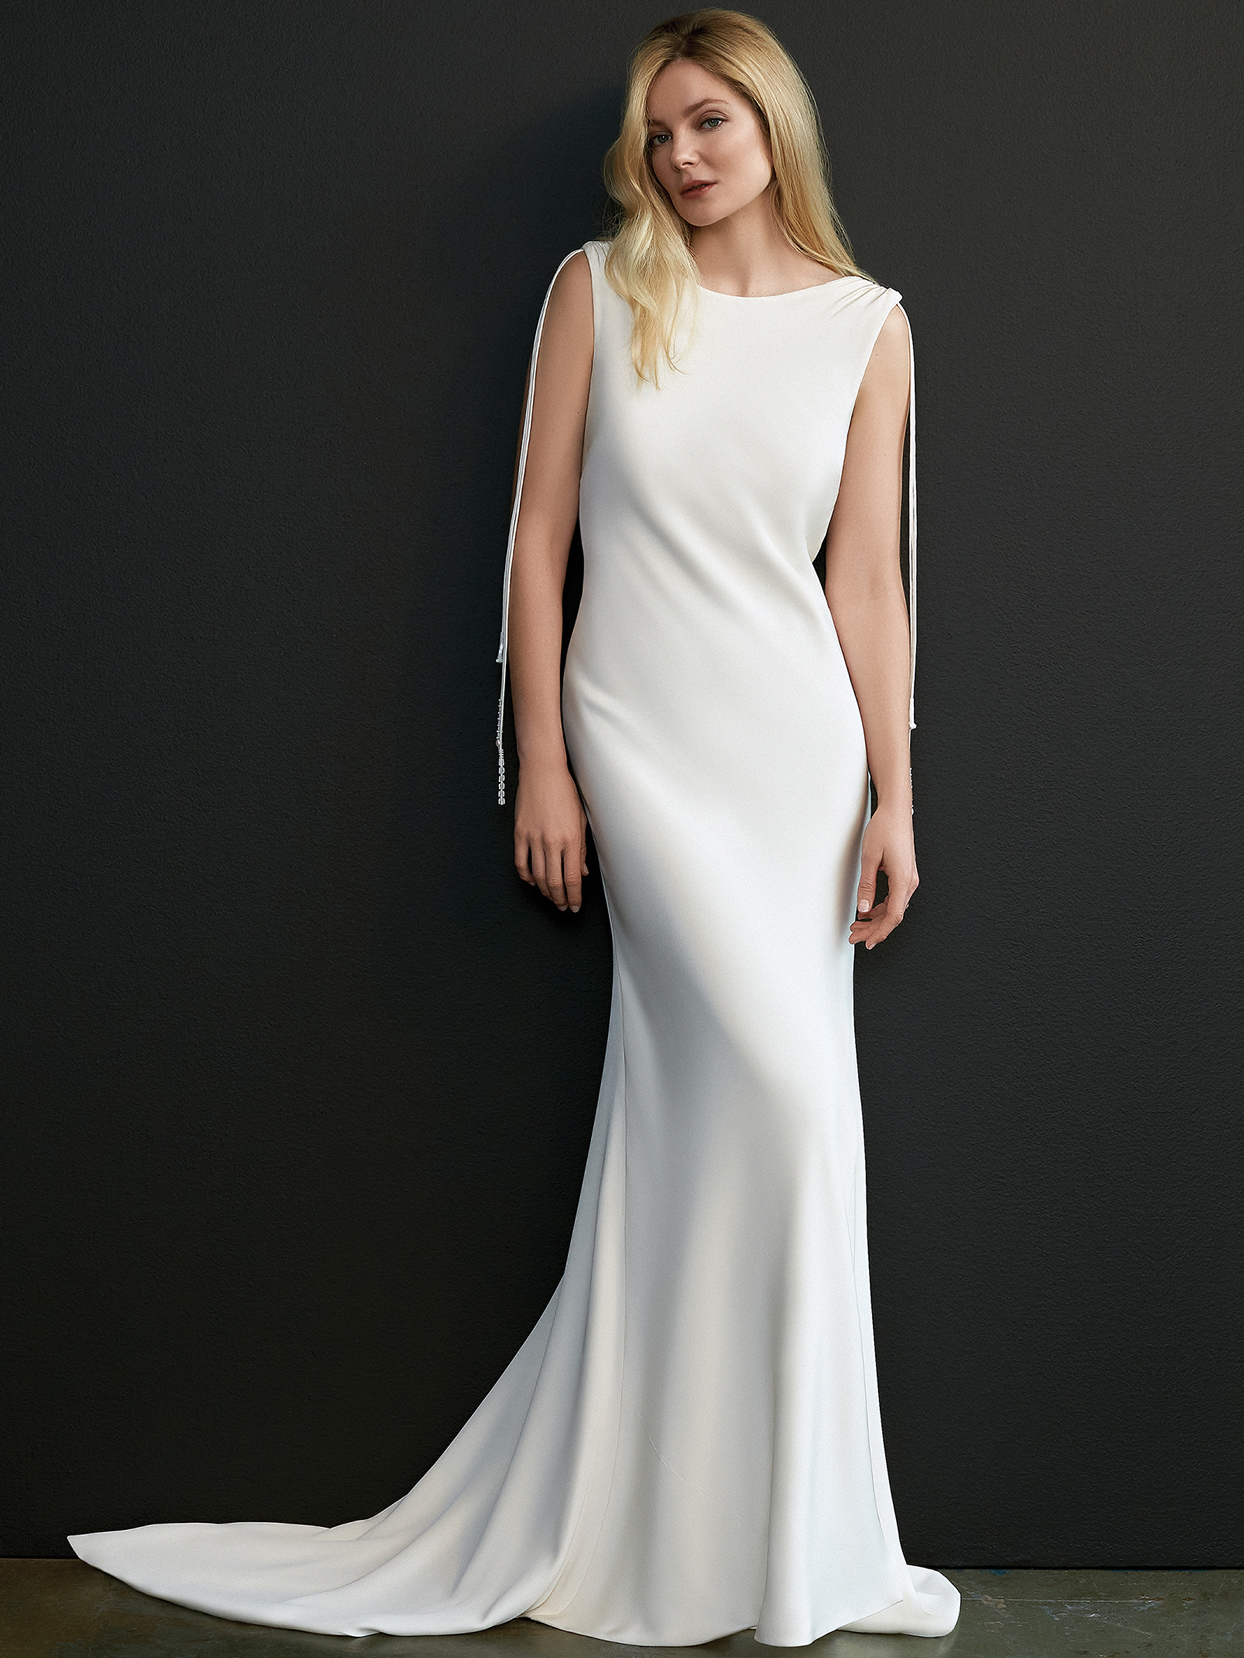 savannah miller cowl neck sleeveless wedding dress spring 2021